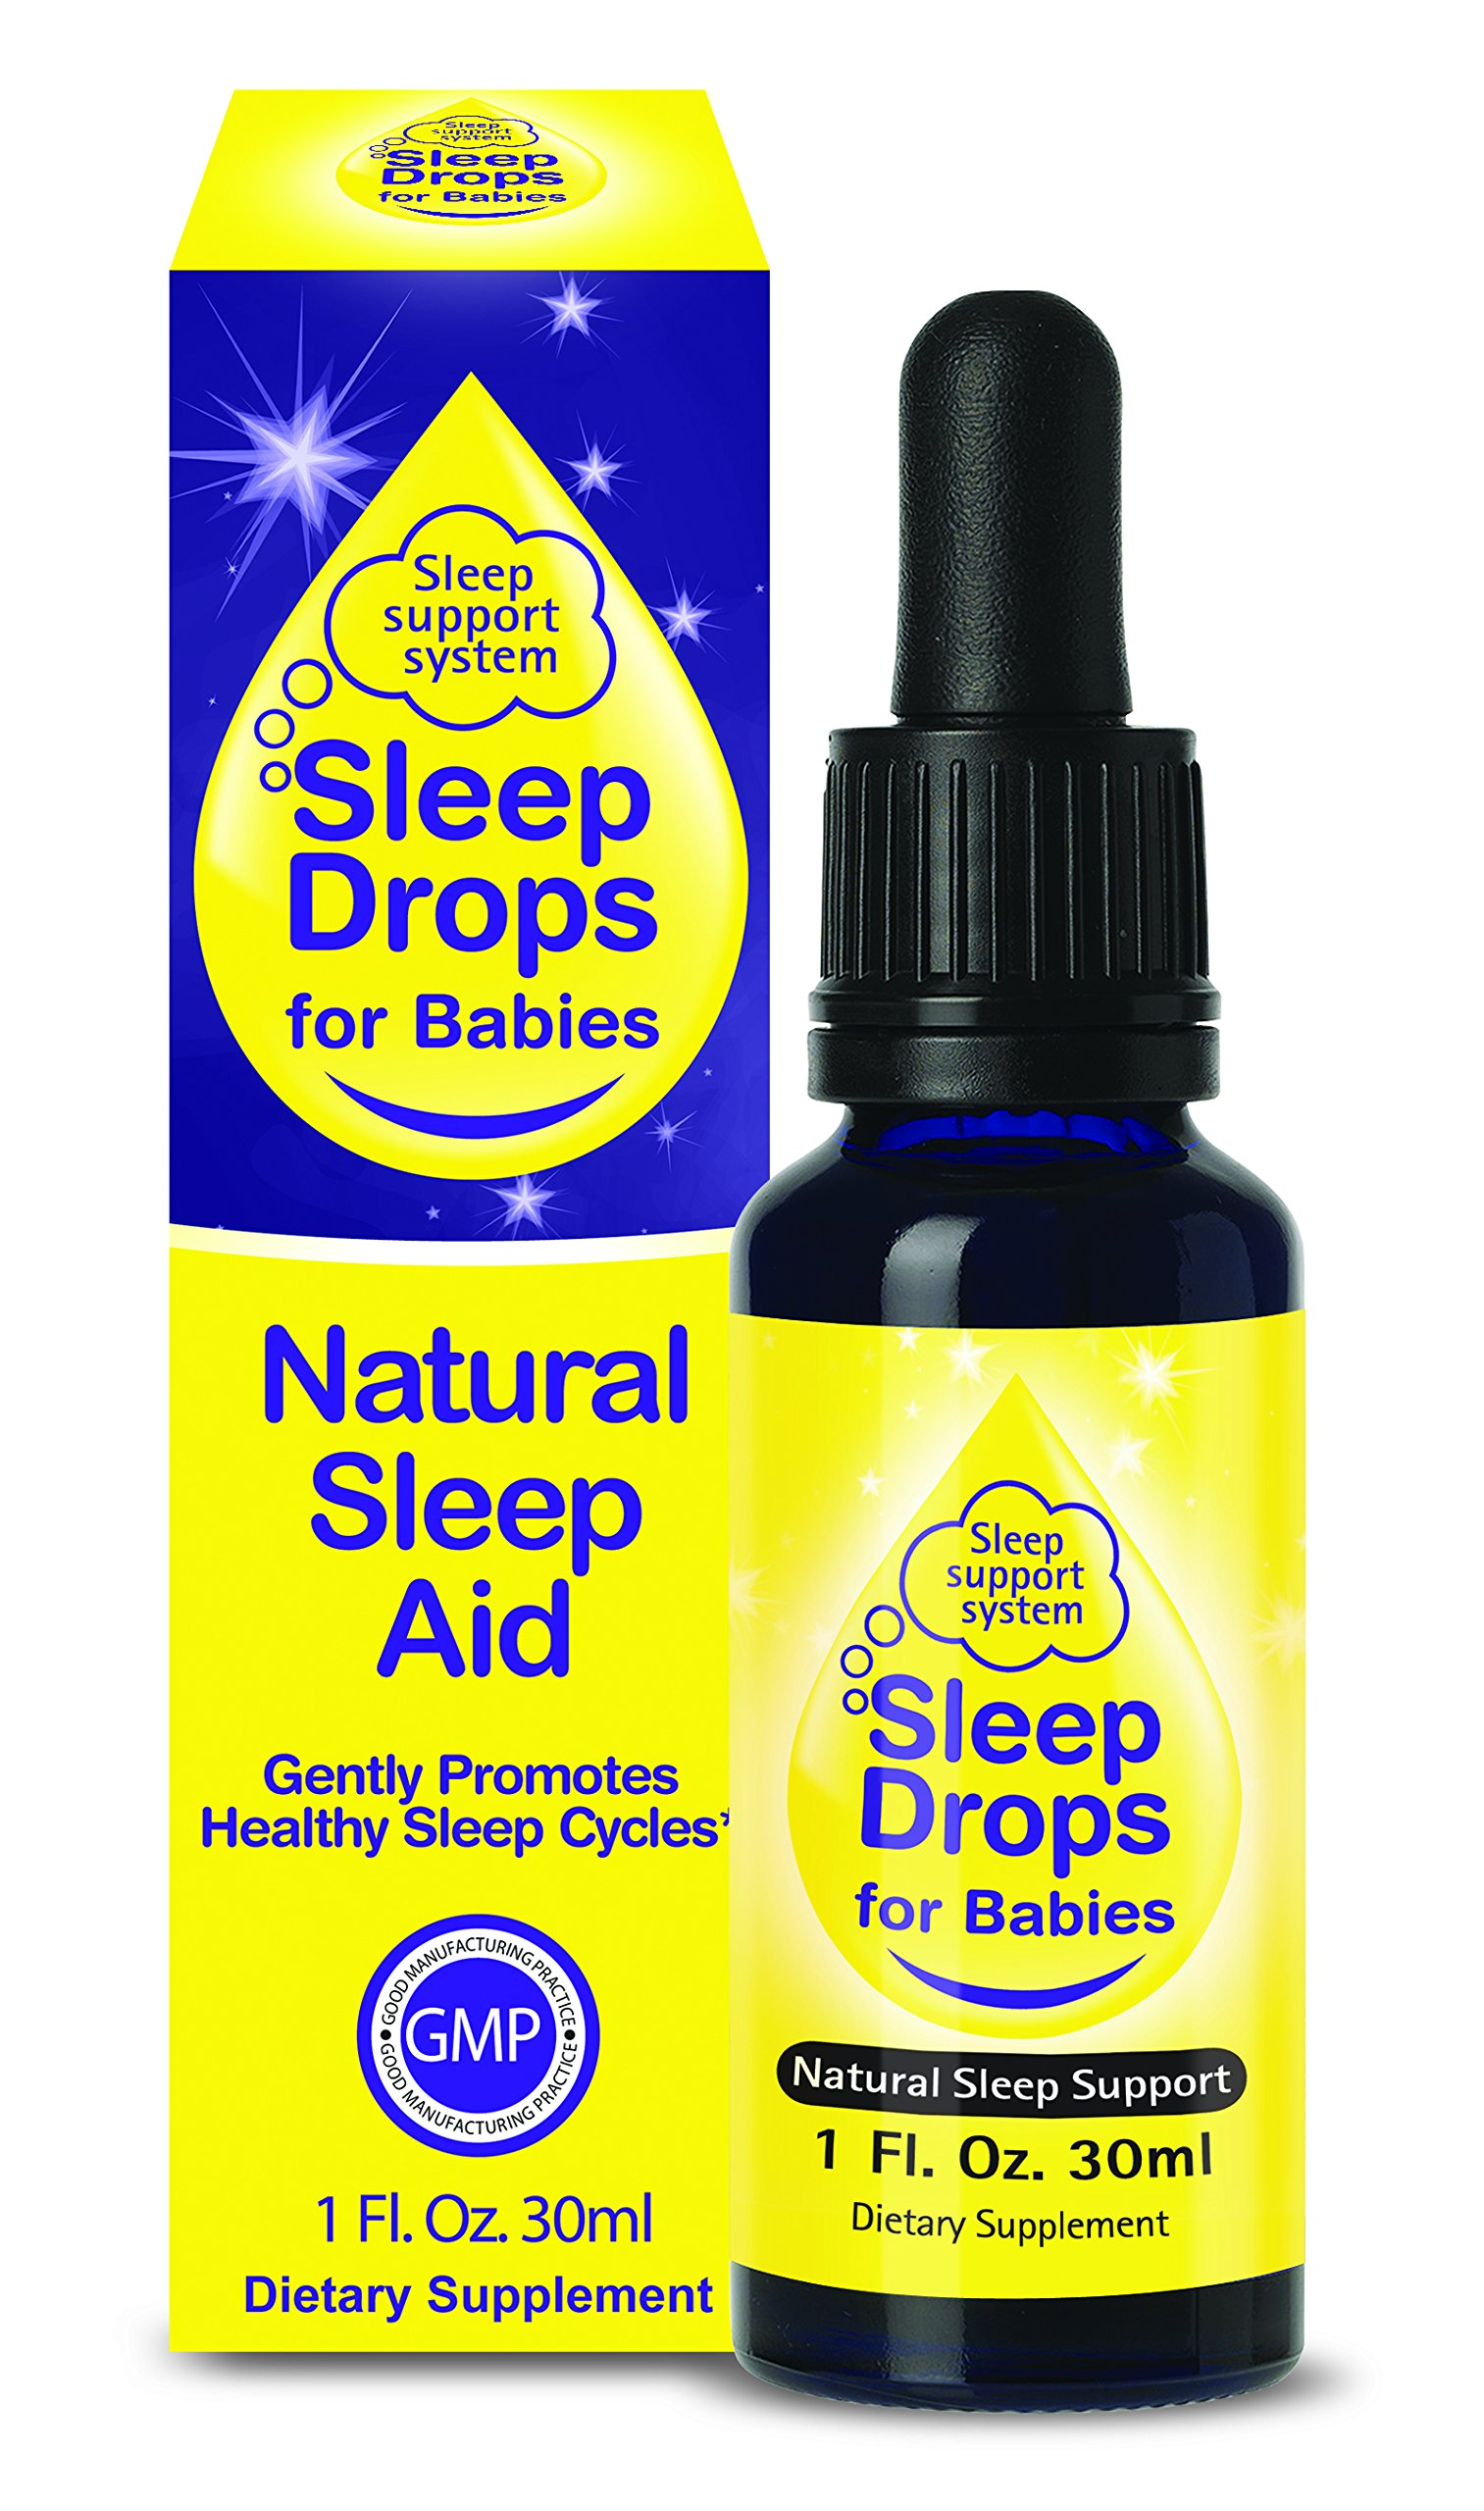 SleepDrops for Babies – Natural Herbal Sleep Aid for Babies aged up to 3, Going To Sleep Faster, Relaxation and Calming, Non-habit Forming (1 Ounce) Great Tasting